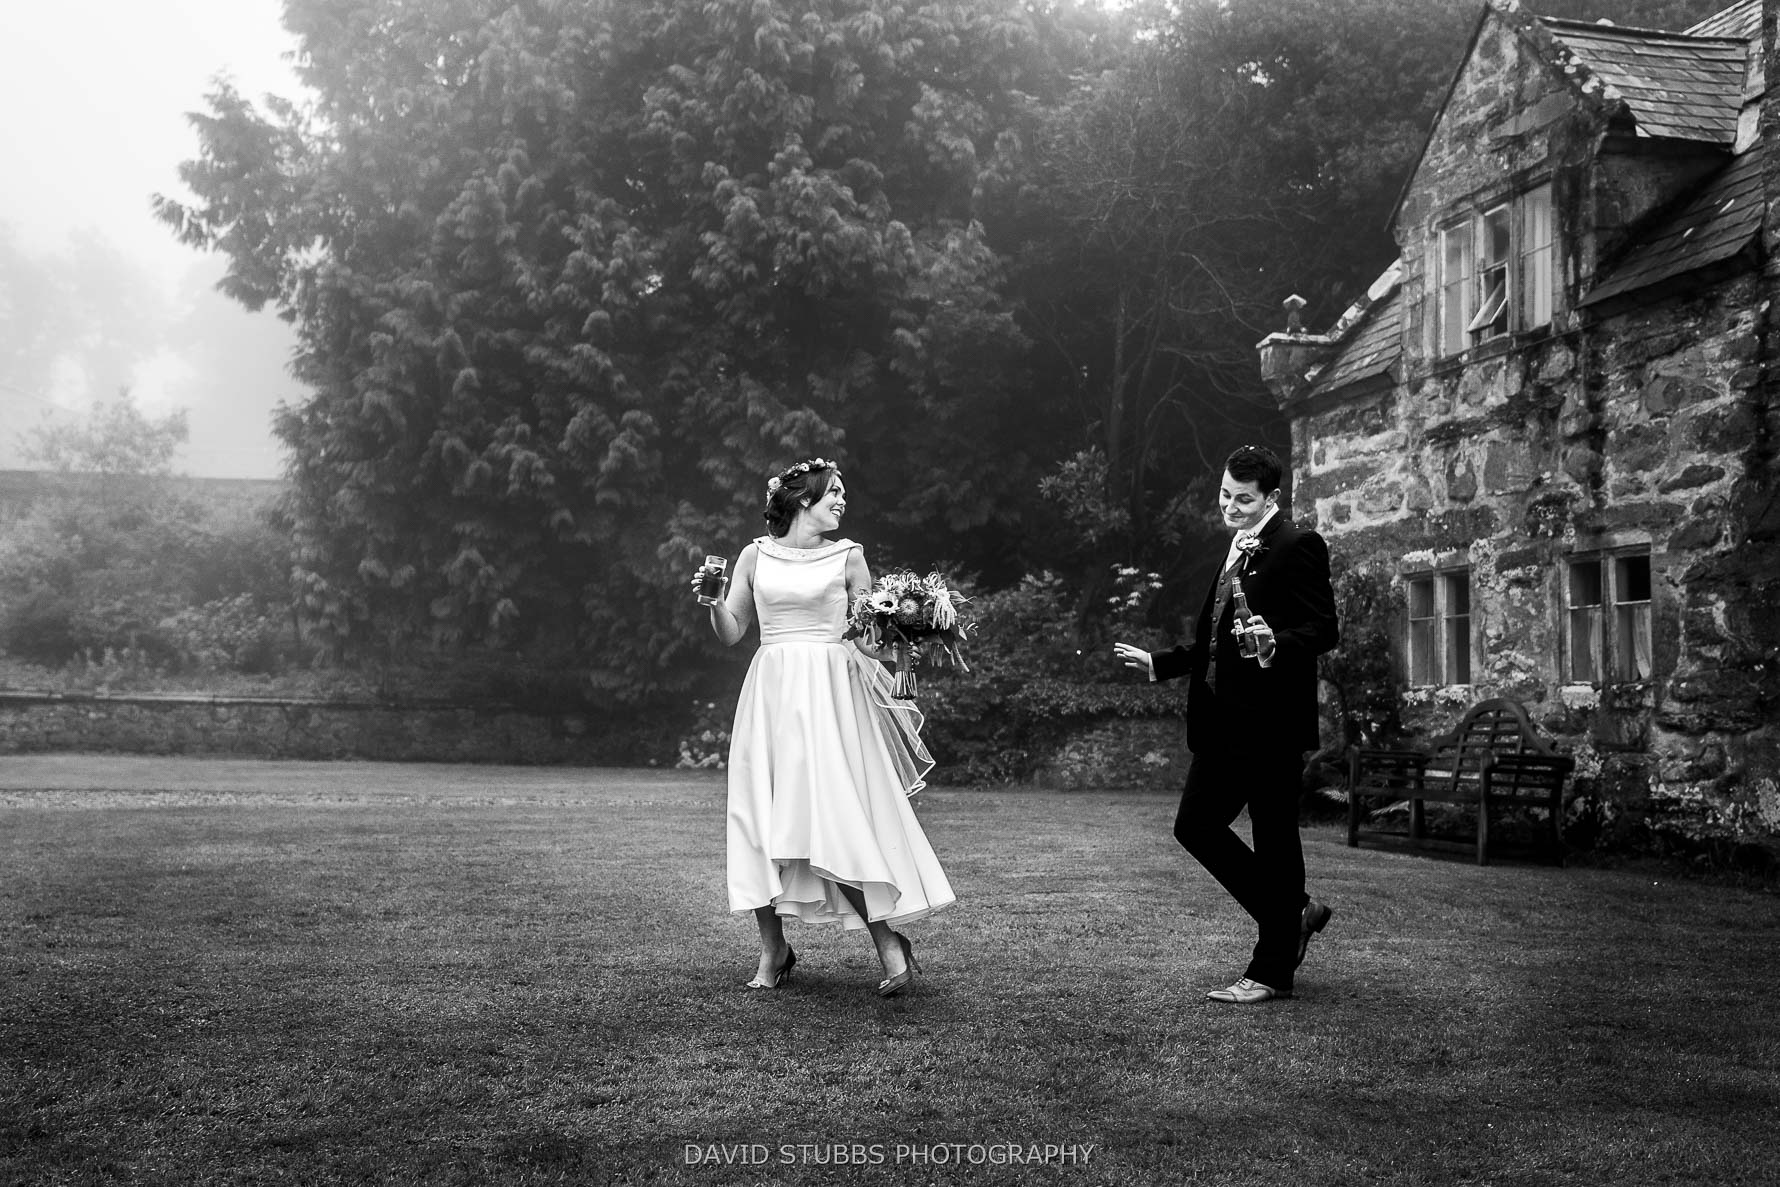 walking across the lawn of the hall